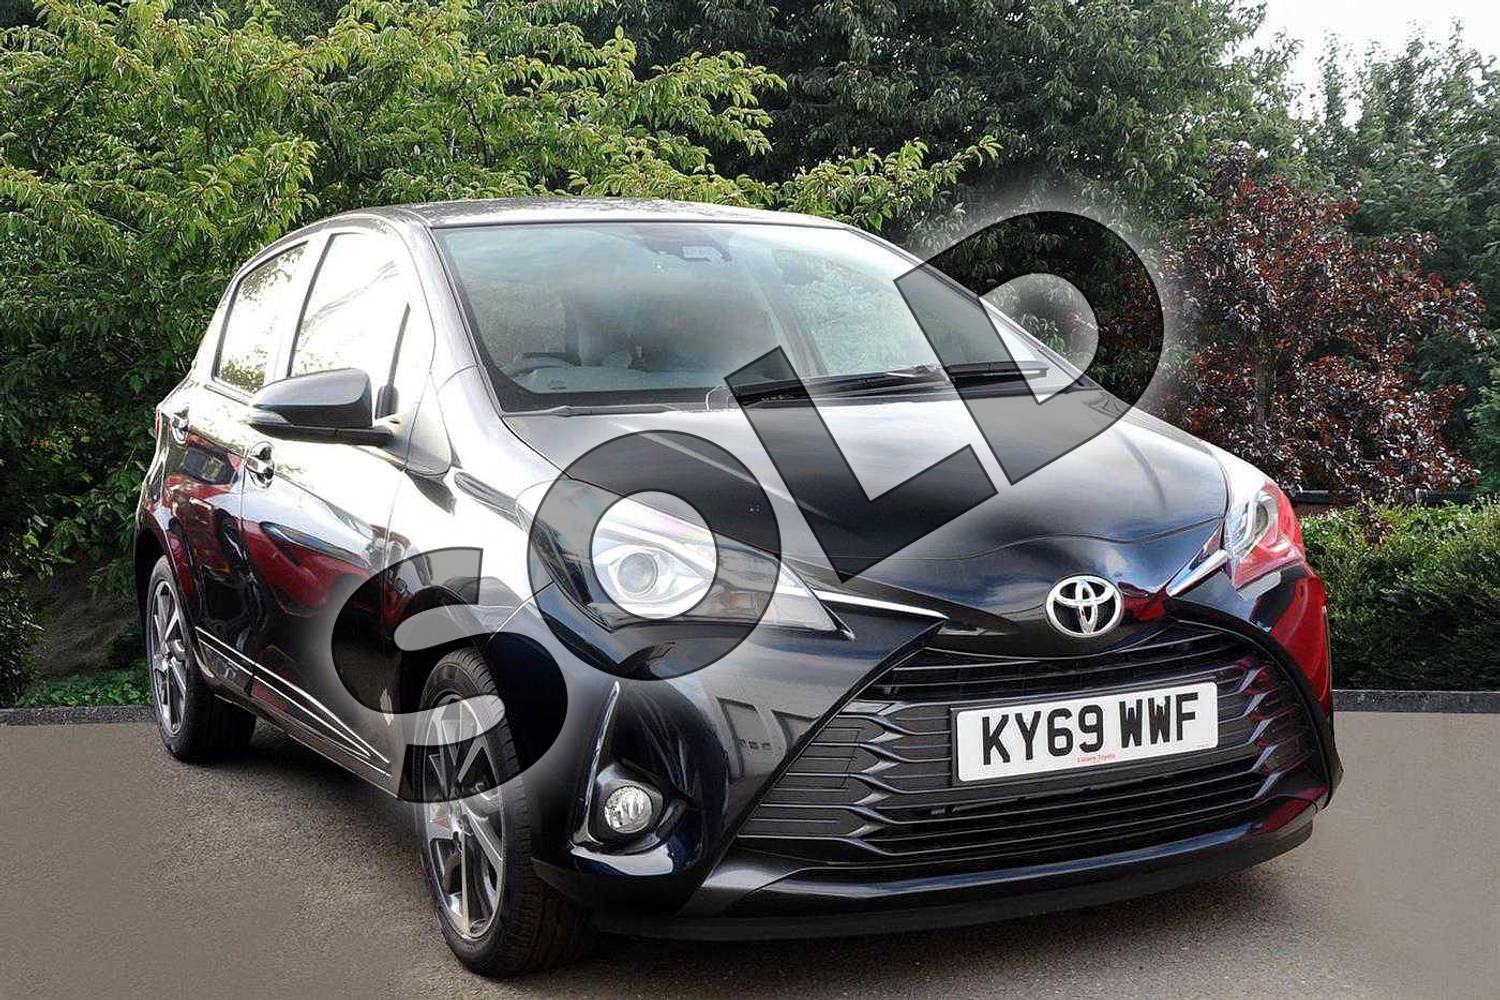 2019 Toyota Yaris Hatchback 1.5 VVT-i Y20 5dr (Bi-tone) in Black at Listers Toyota Nuneaton